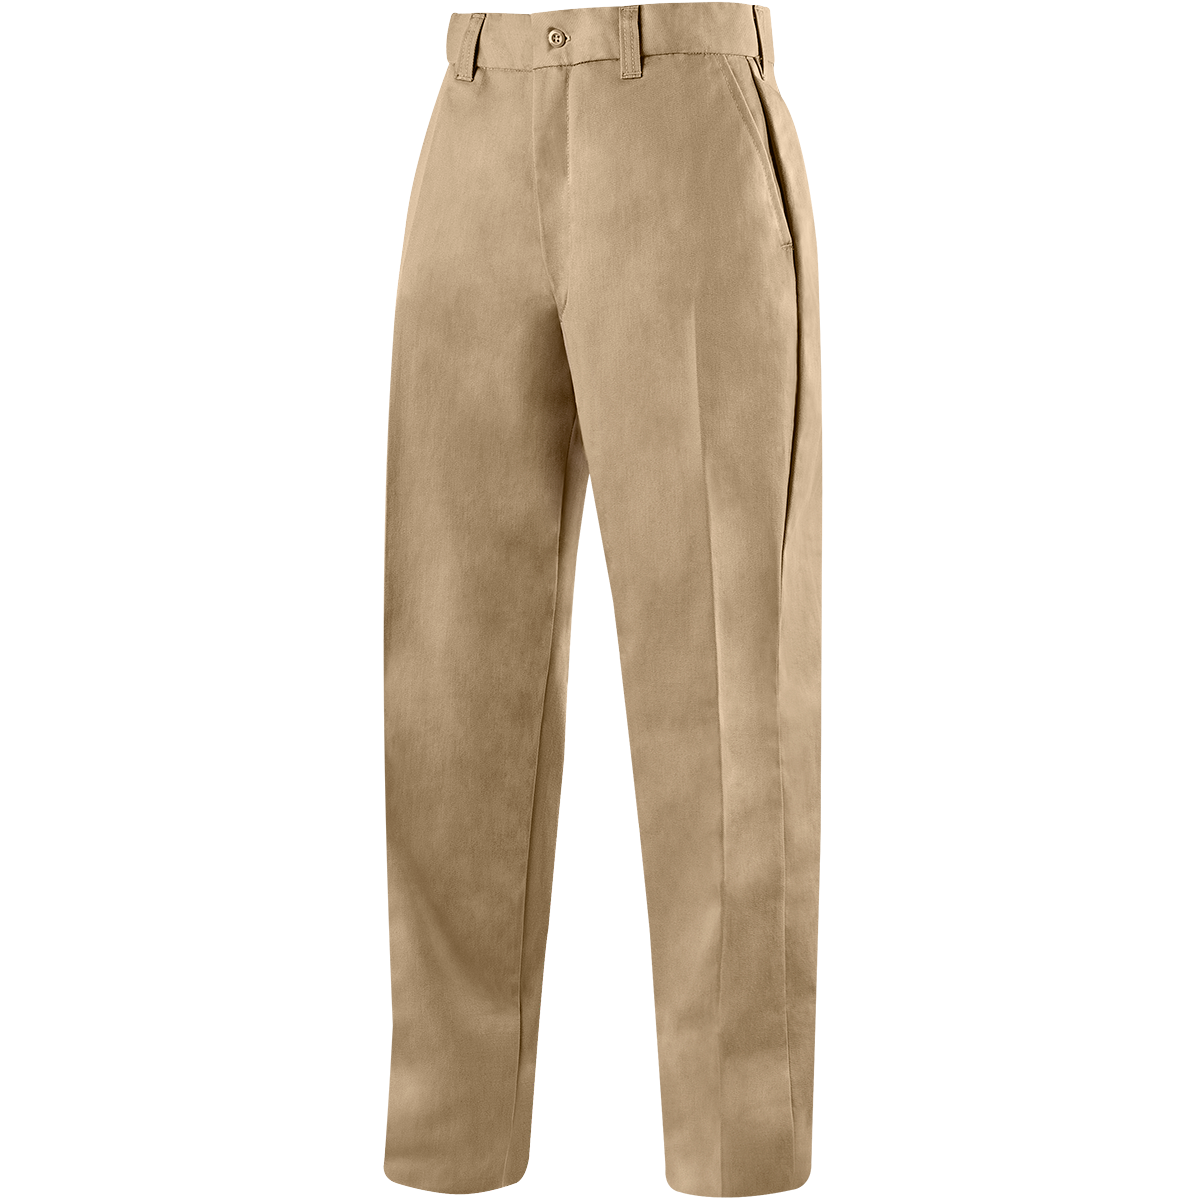 Trousers PNG Free Download SVG Clip arts